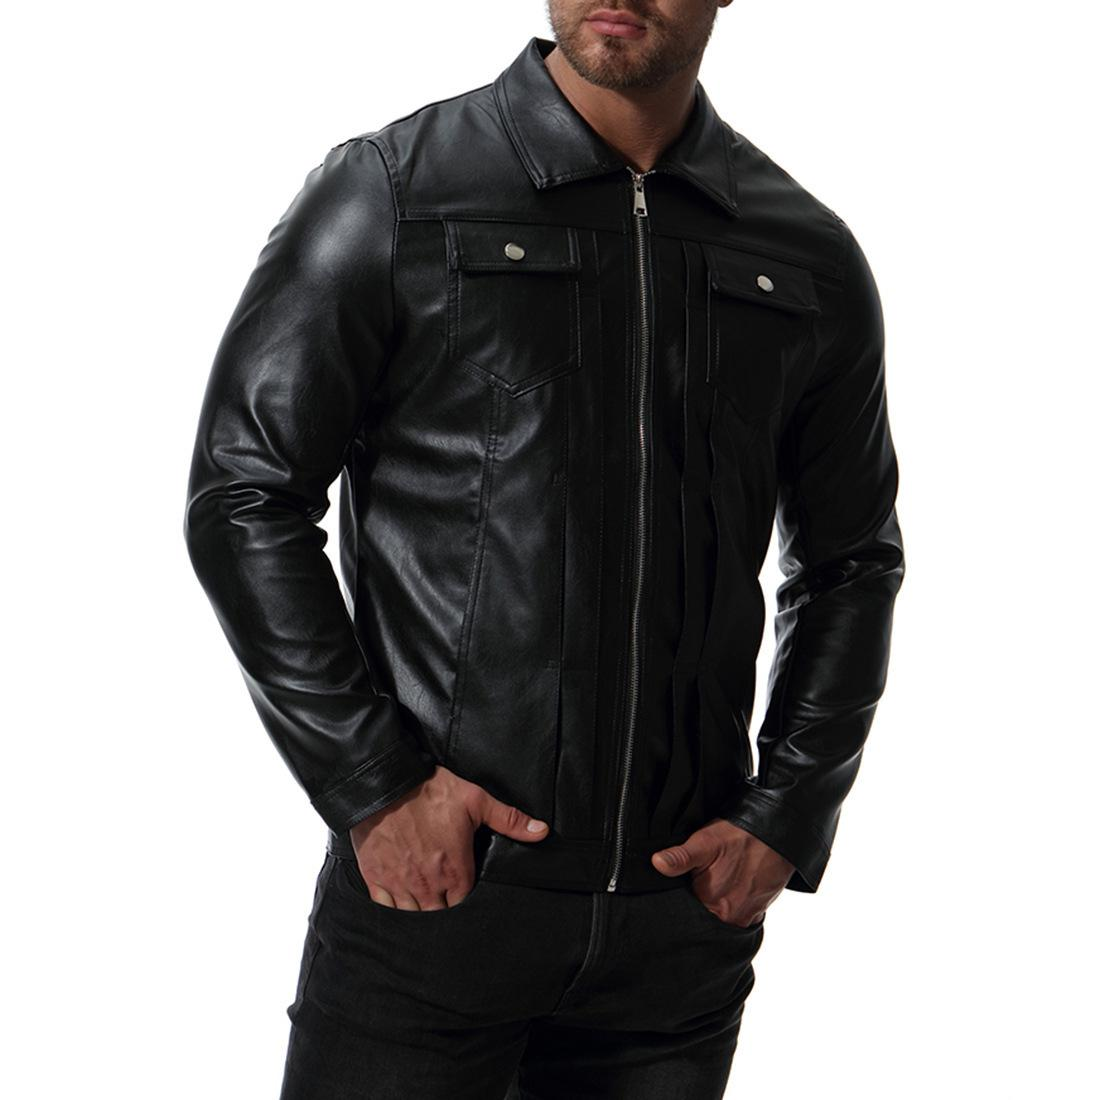 New Arrive Brand Motorcycle Leather Jacket Men, Mens Leather Jacket Jaqueta De Couro Masculina,mens Leather Jackets Coats